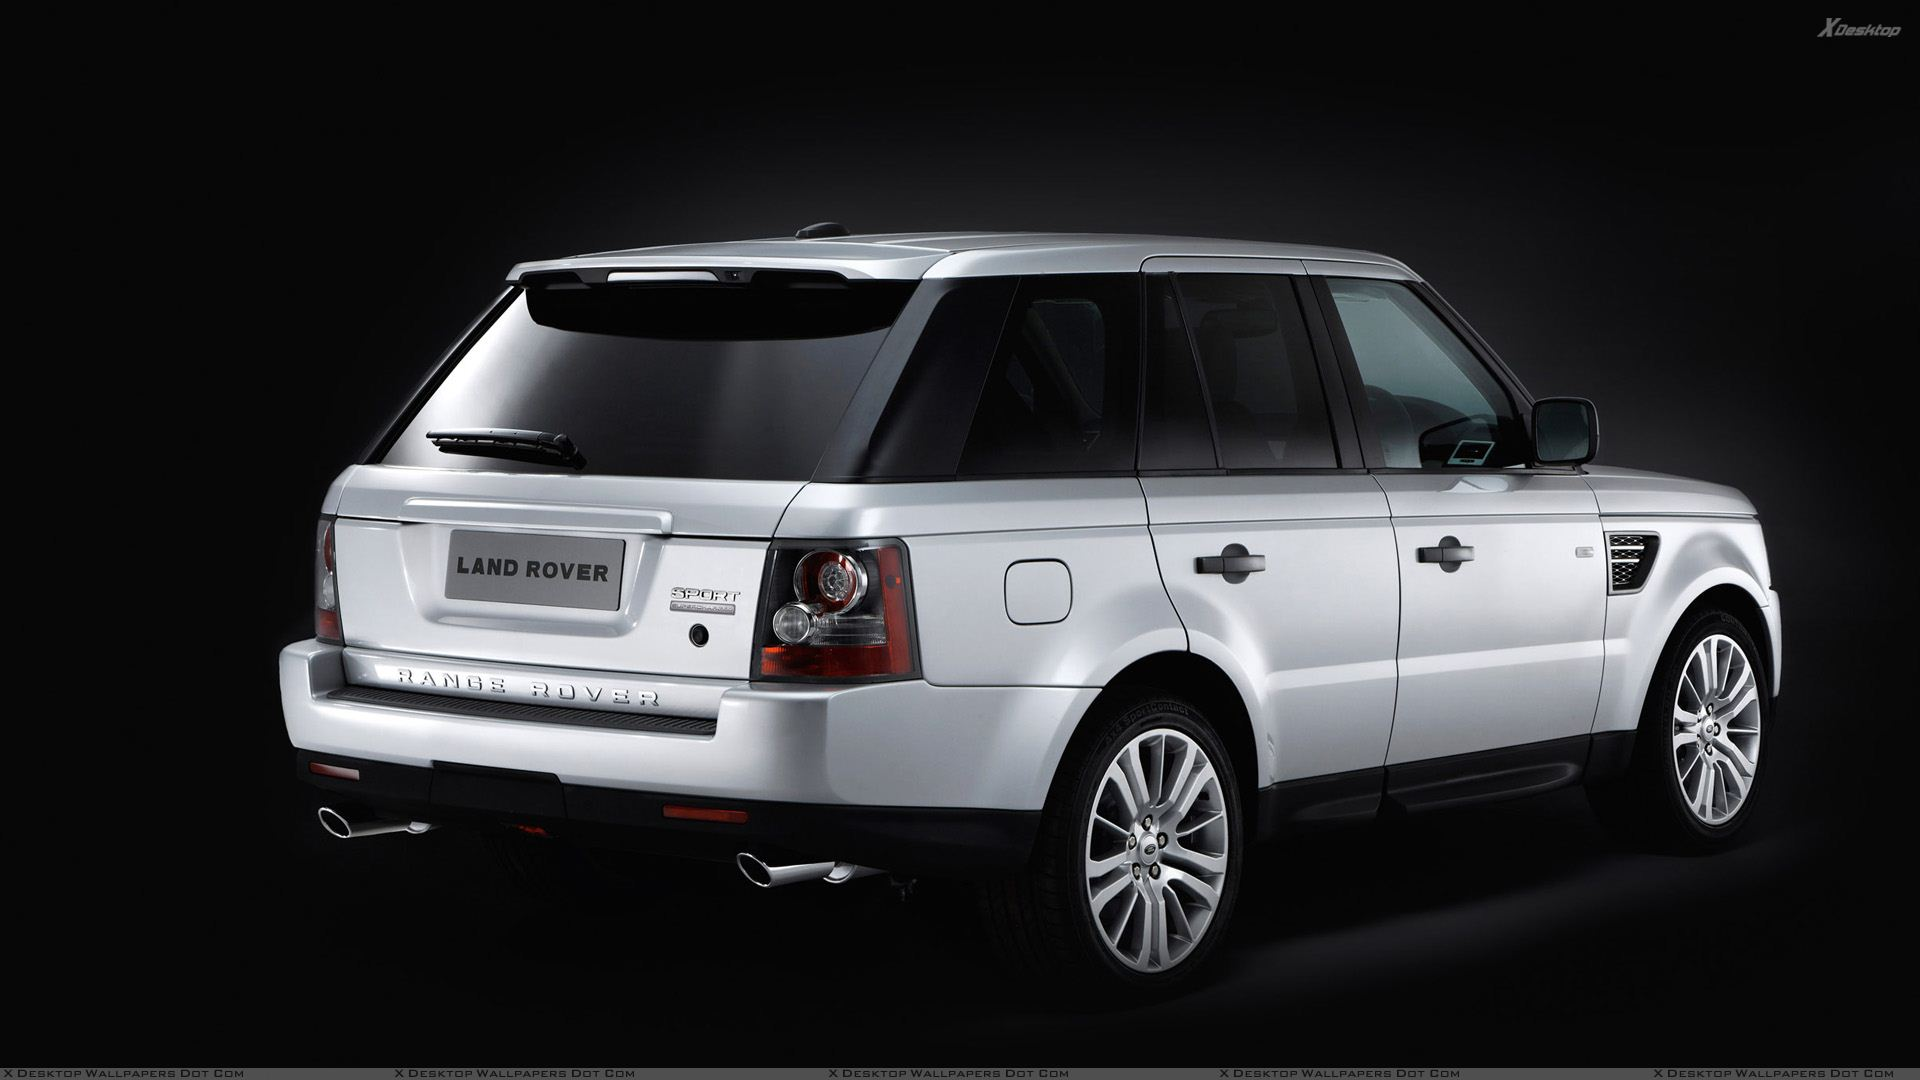 2010 range rover sport side back pose in white n black background wallpaper. Black Bedroom Furniture Sets. Home Design Ideas